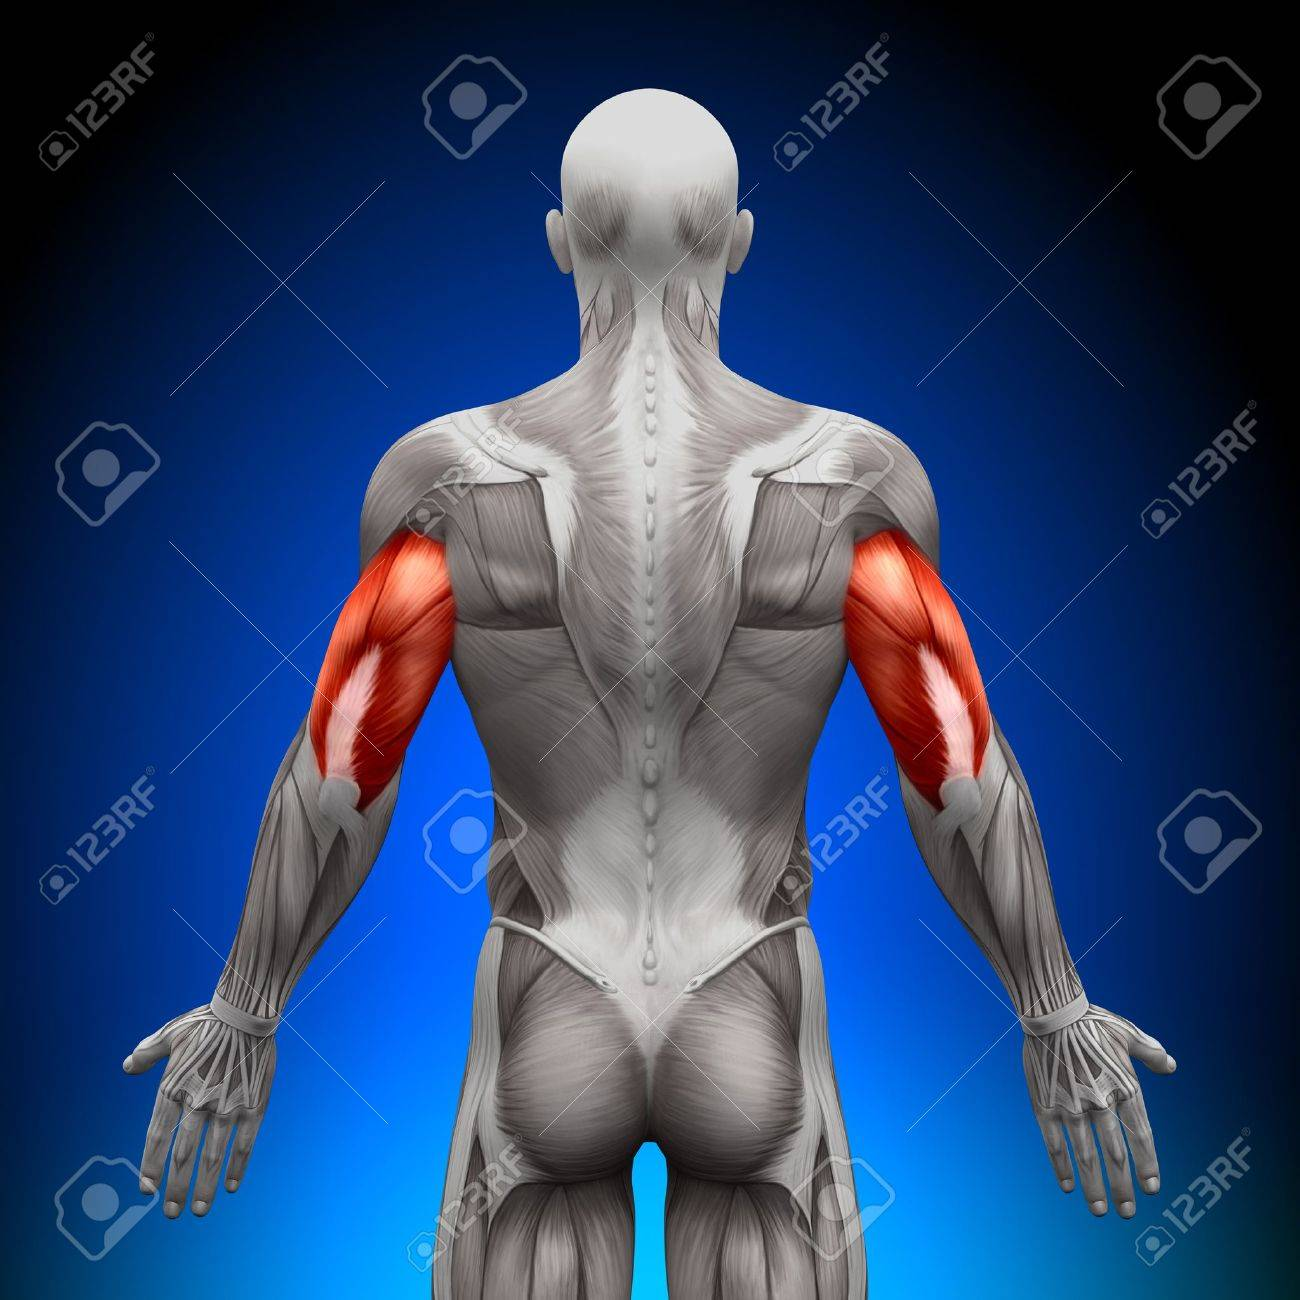 Triceps Anatomy Muscles Stock Photo, Picture And Royalty Free Image ...